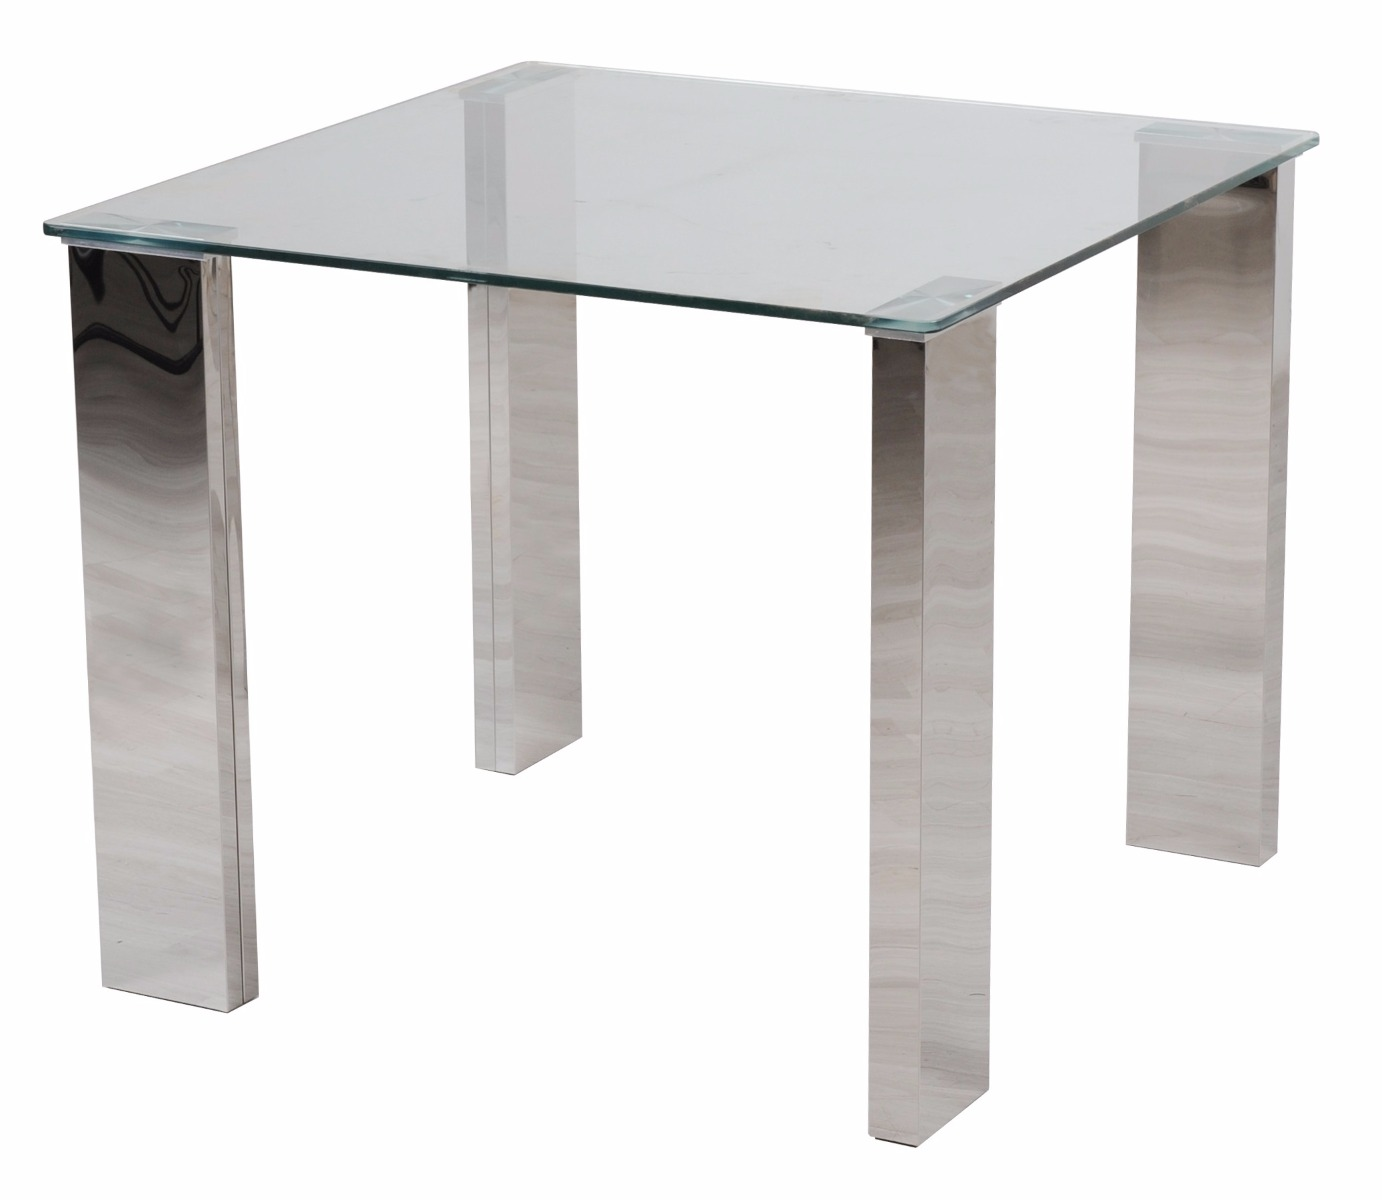 https://www.firstfurniture.co.uk/pub/media/catalog/product/d/o/dokota_dining_table_sq_4.jpg